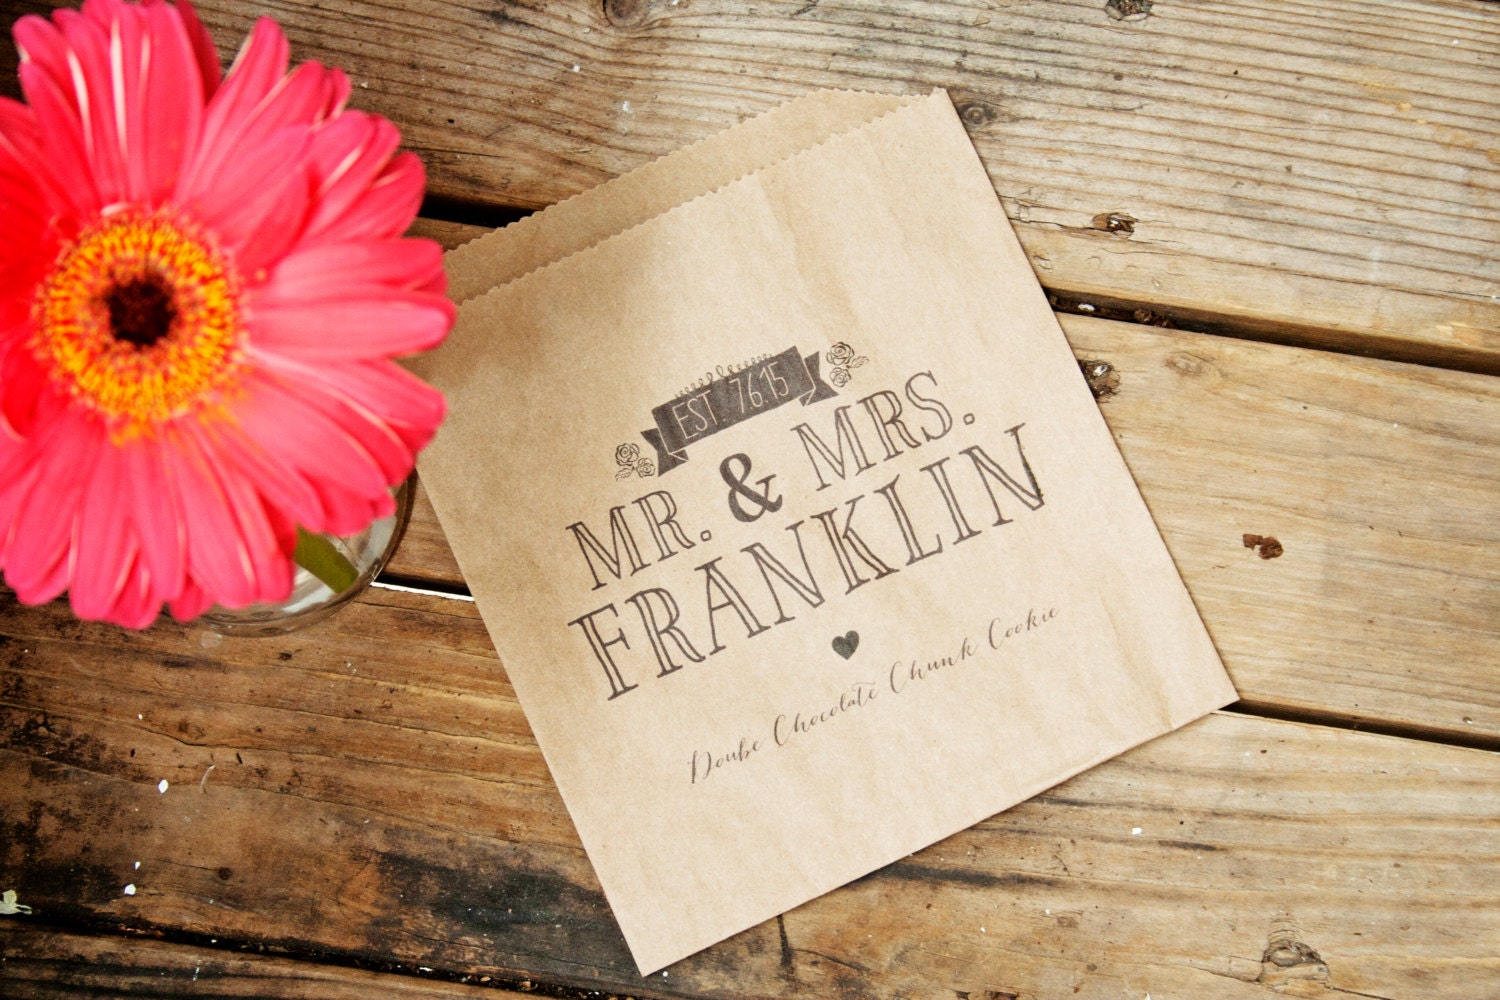 Wedding Favor Cookie Bag Cookie Treat Bag Mr and Mrs by mavora